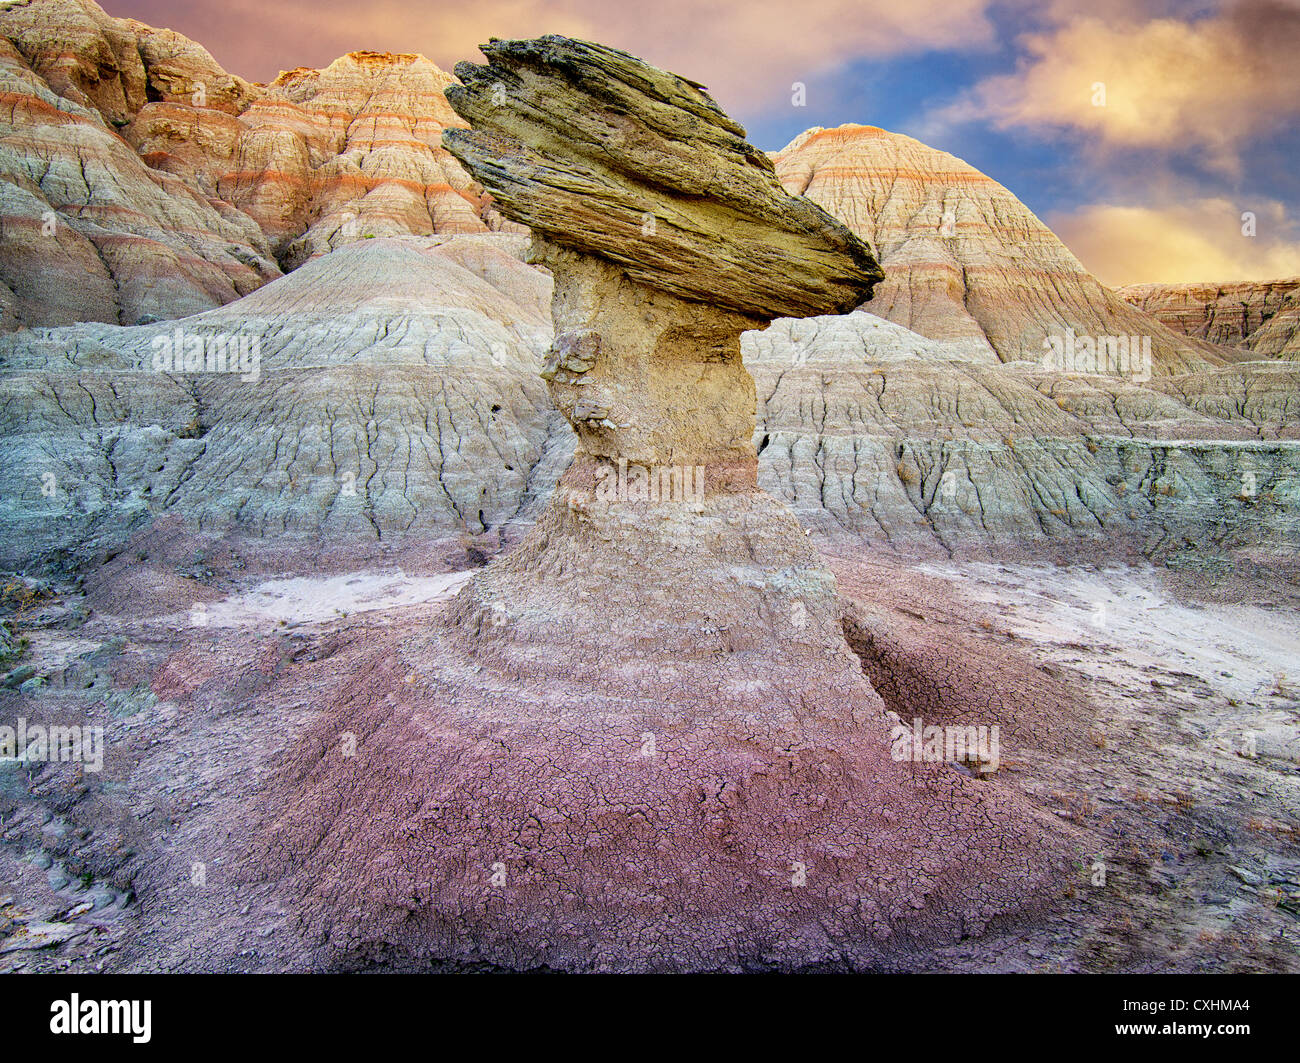 Balancing rock. Badlands National Park. South Dakota - Stock Image